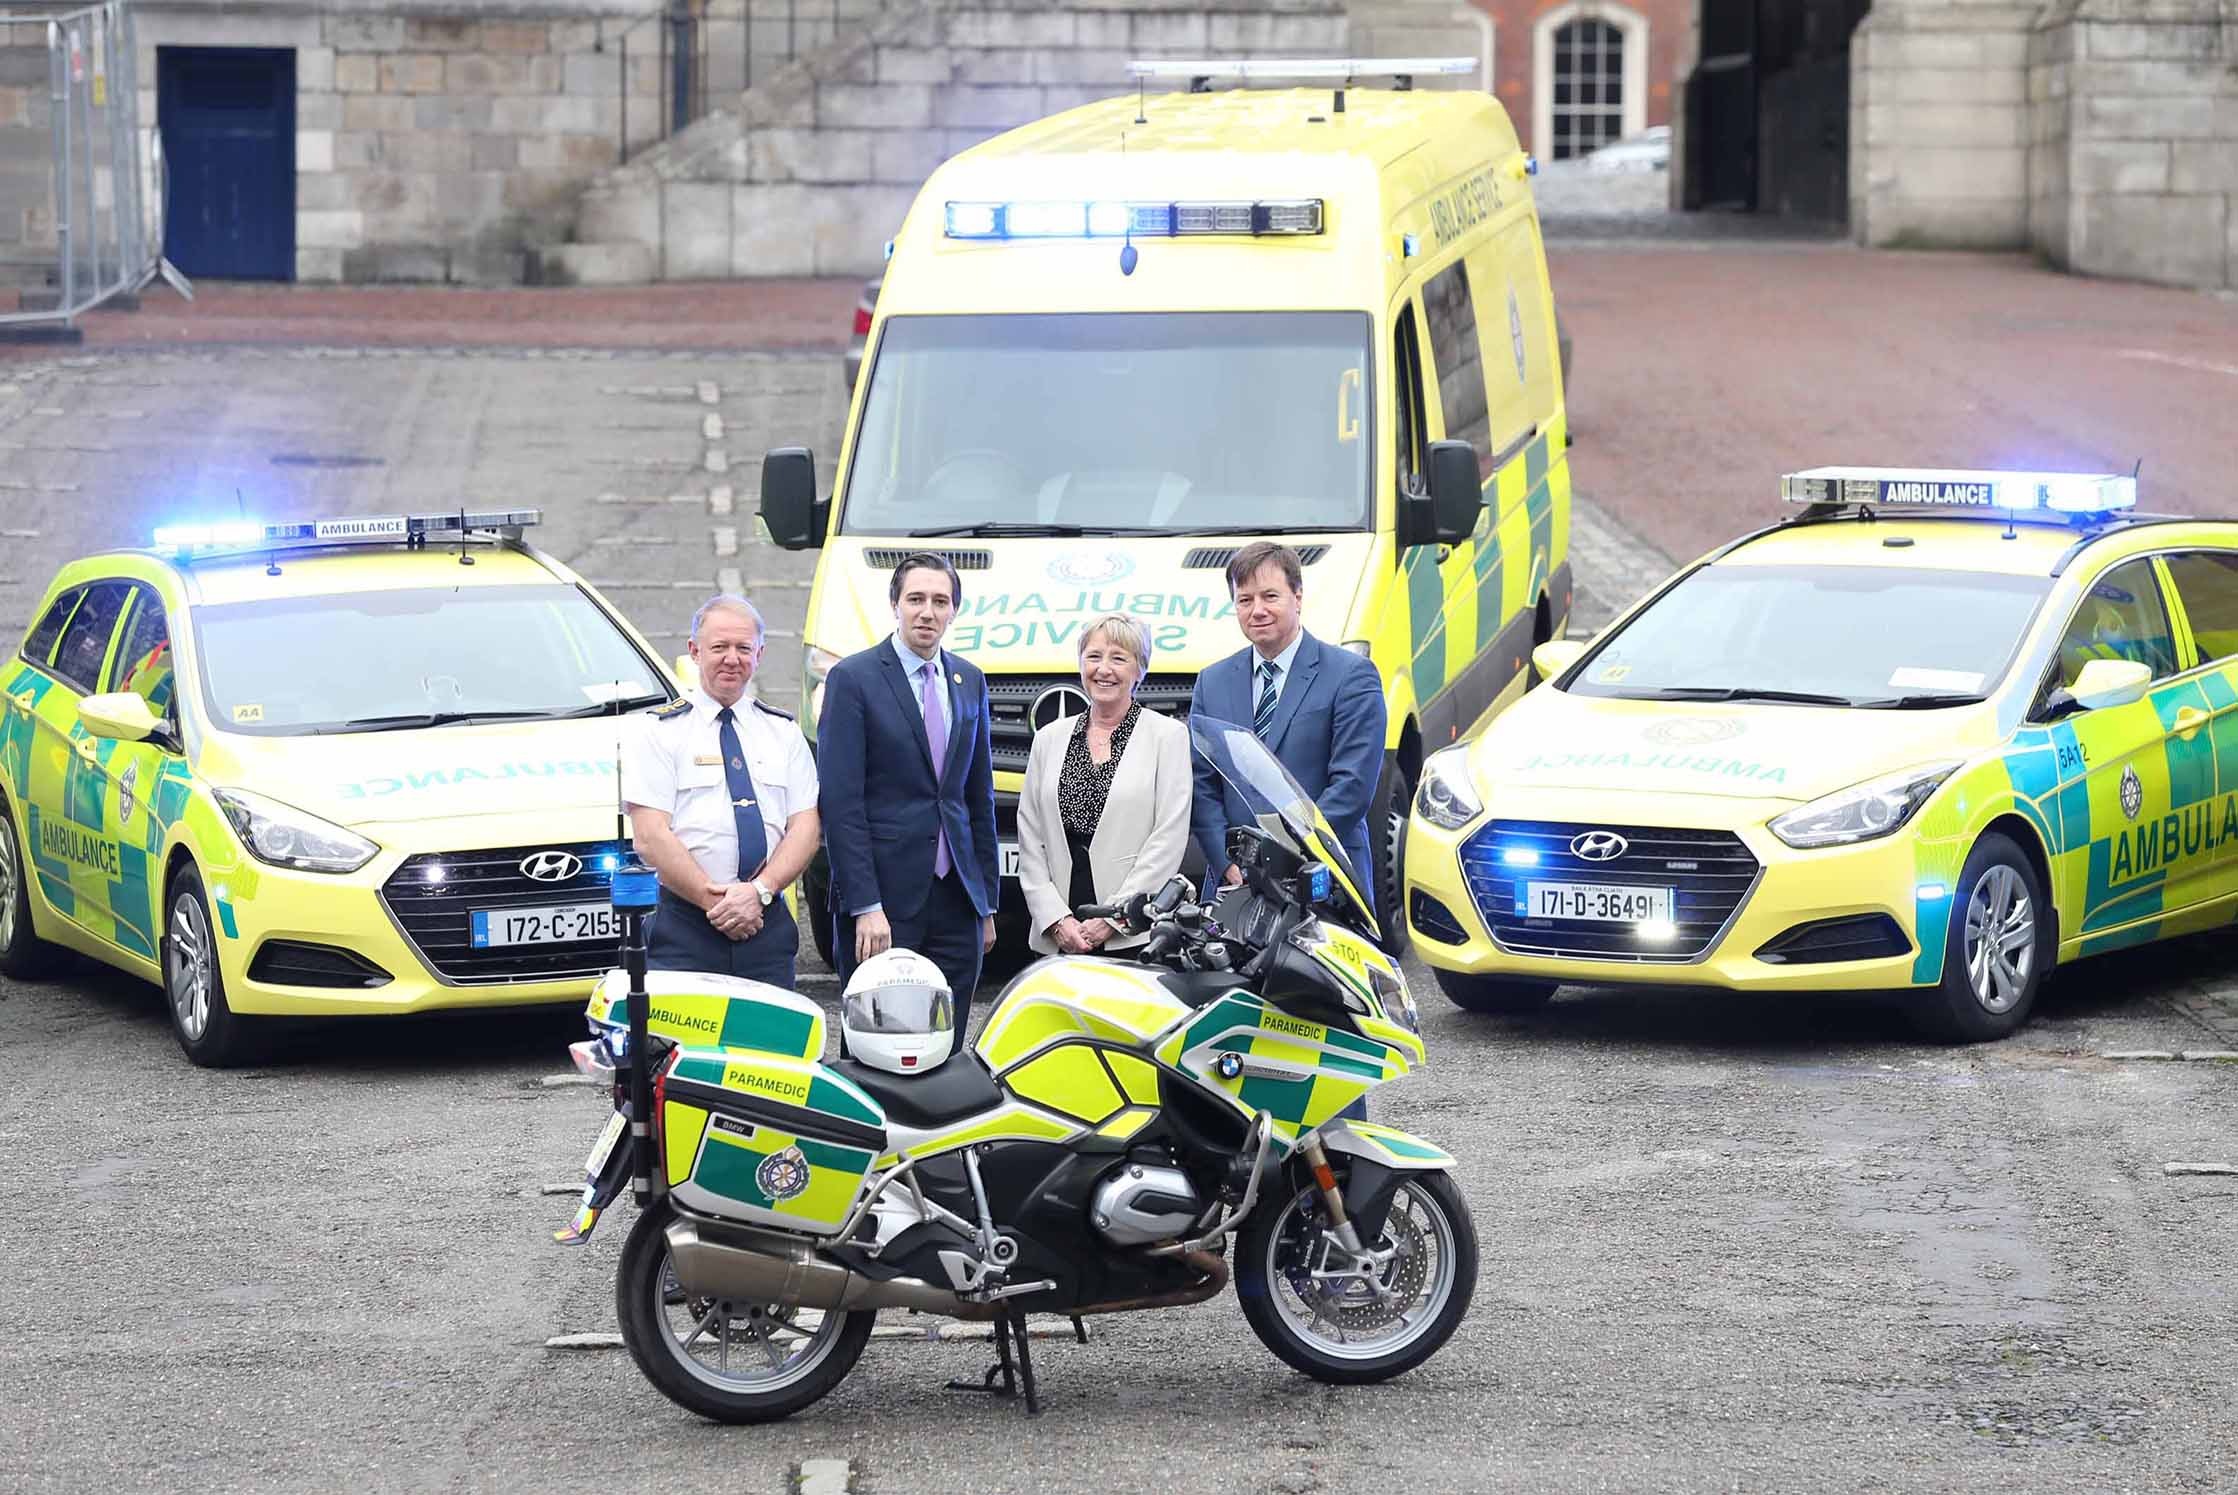 National Ambulance Service Introduced 91 New Vehicles Into Its Services During 2017